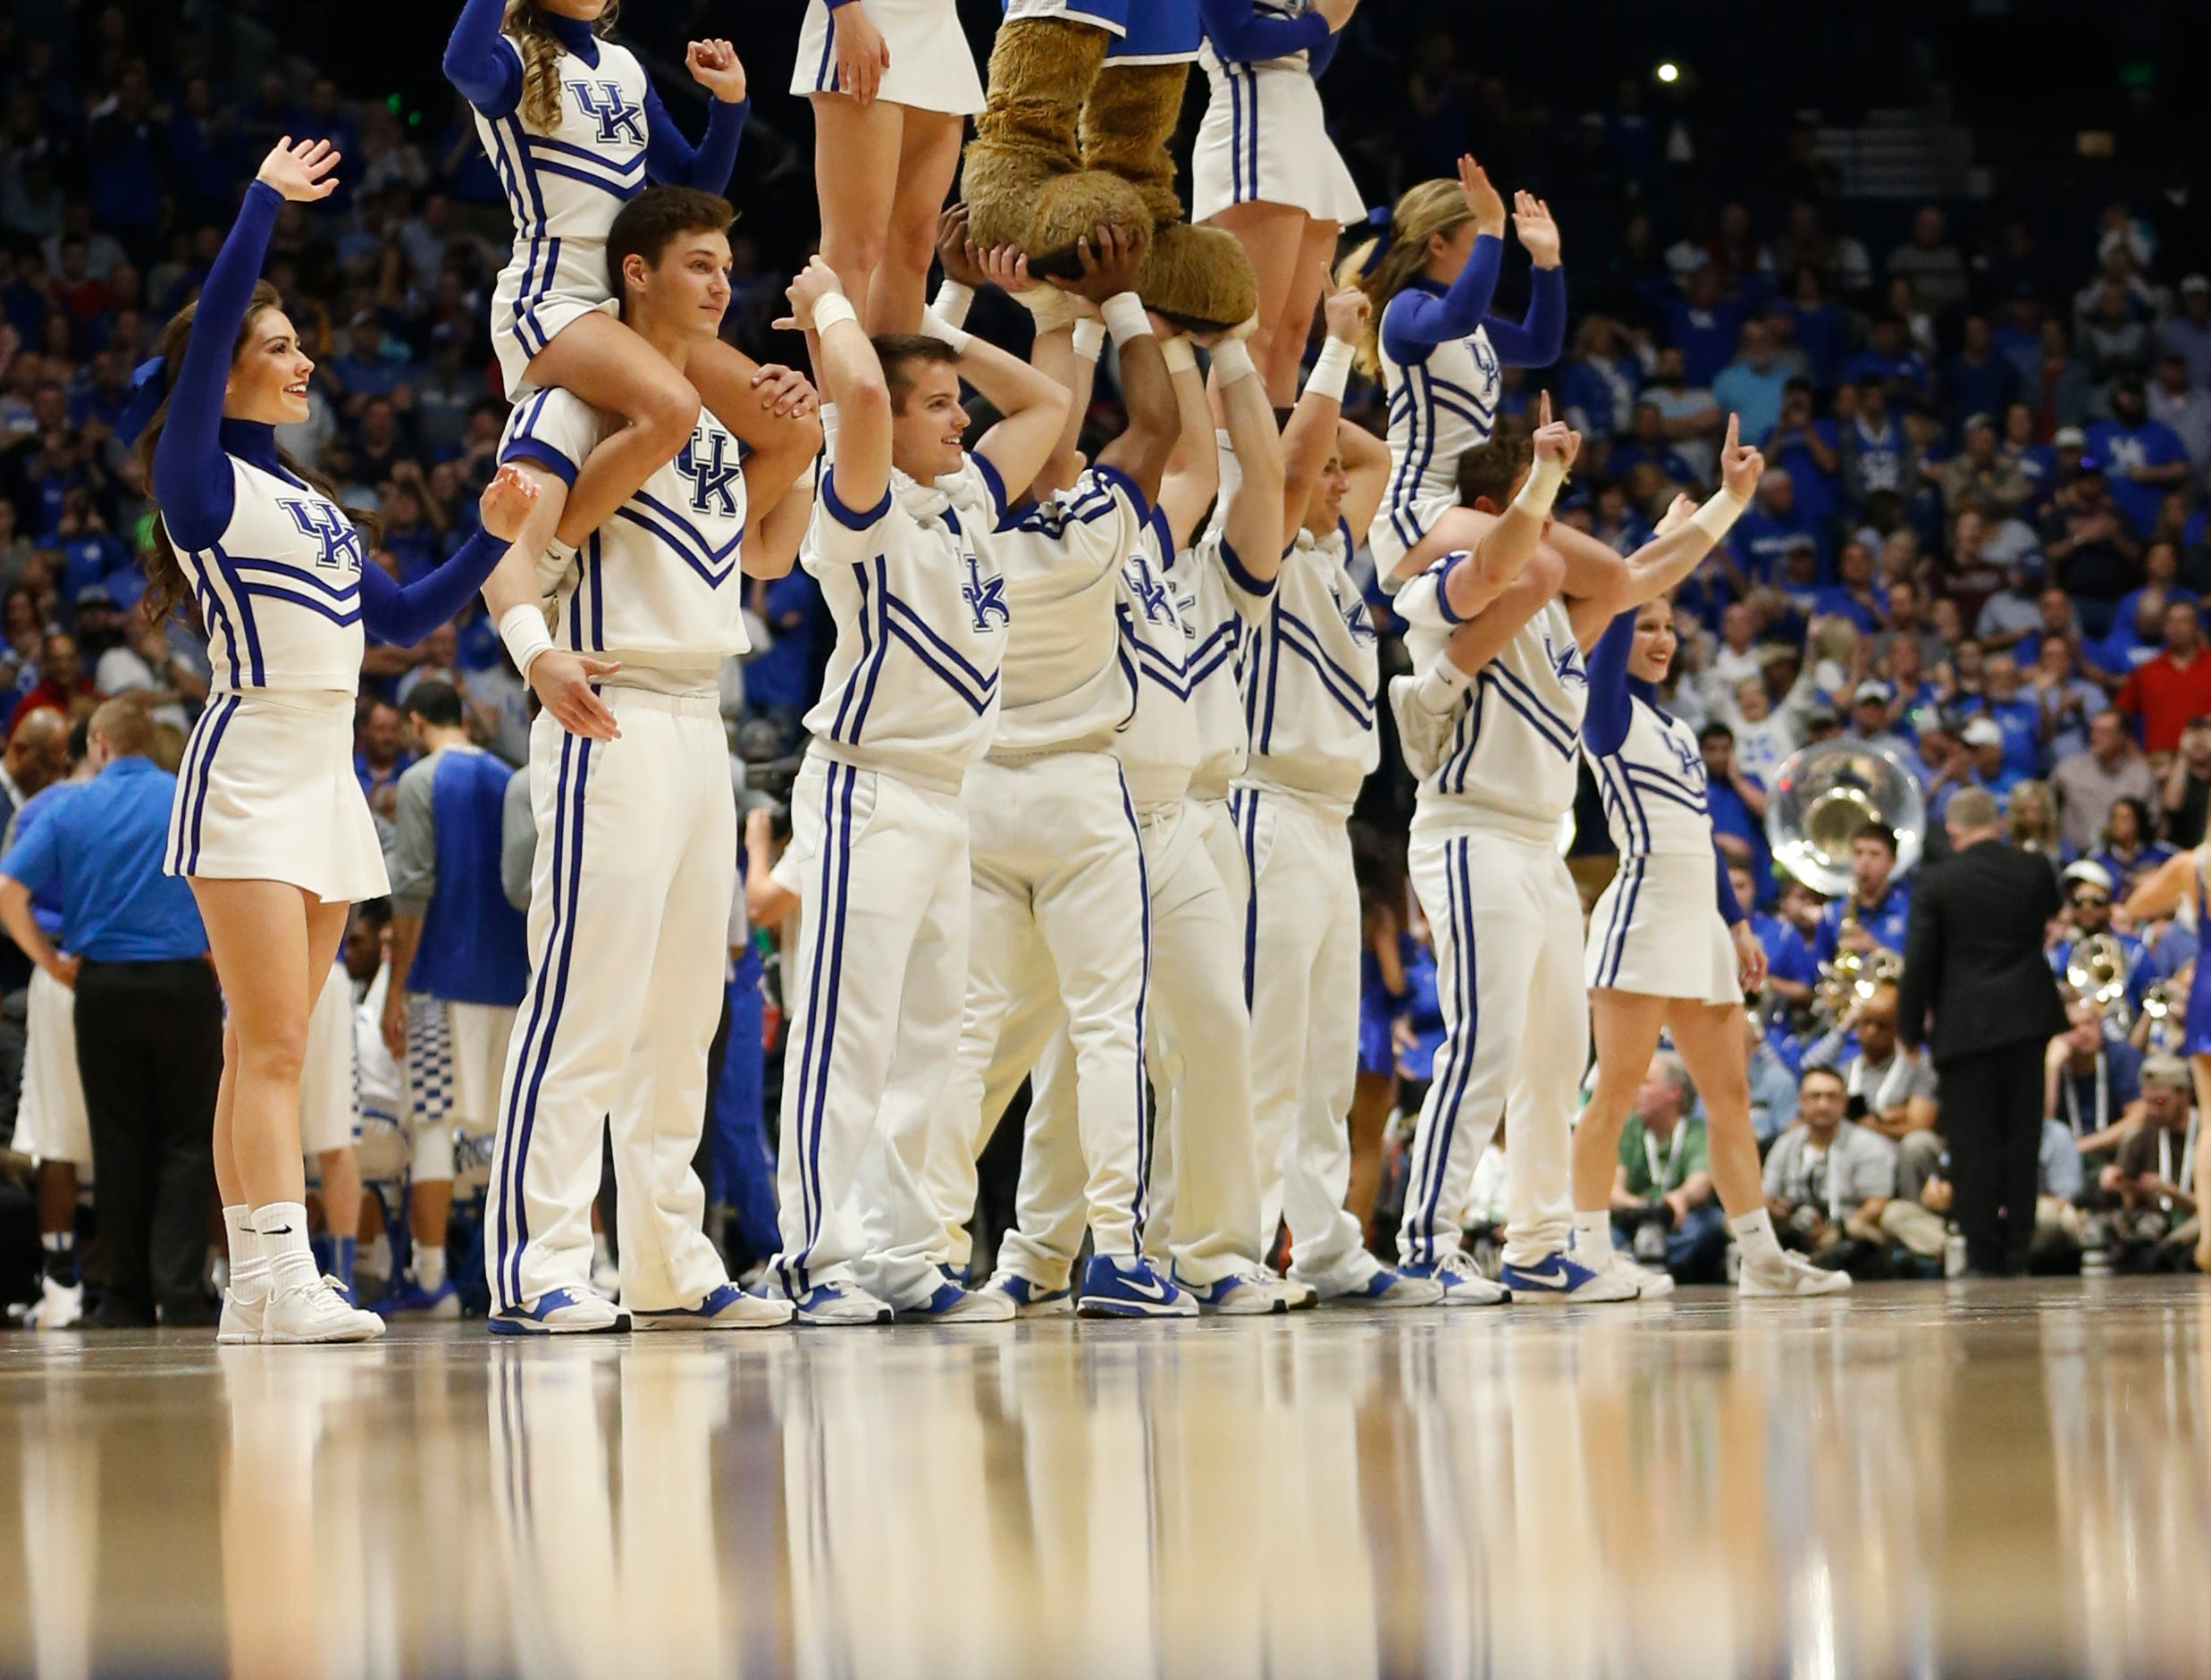 Kentucky cheerleaders perform during the second half of an NCAA college basketball game against Georgia in the Southeastern Conference tournament in Nashville, Tenn., Saturday, March 12, 2016. Kentucky won 93-80. (AP Photo/John Bazemore)